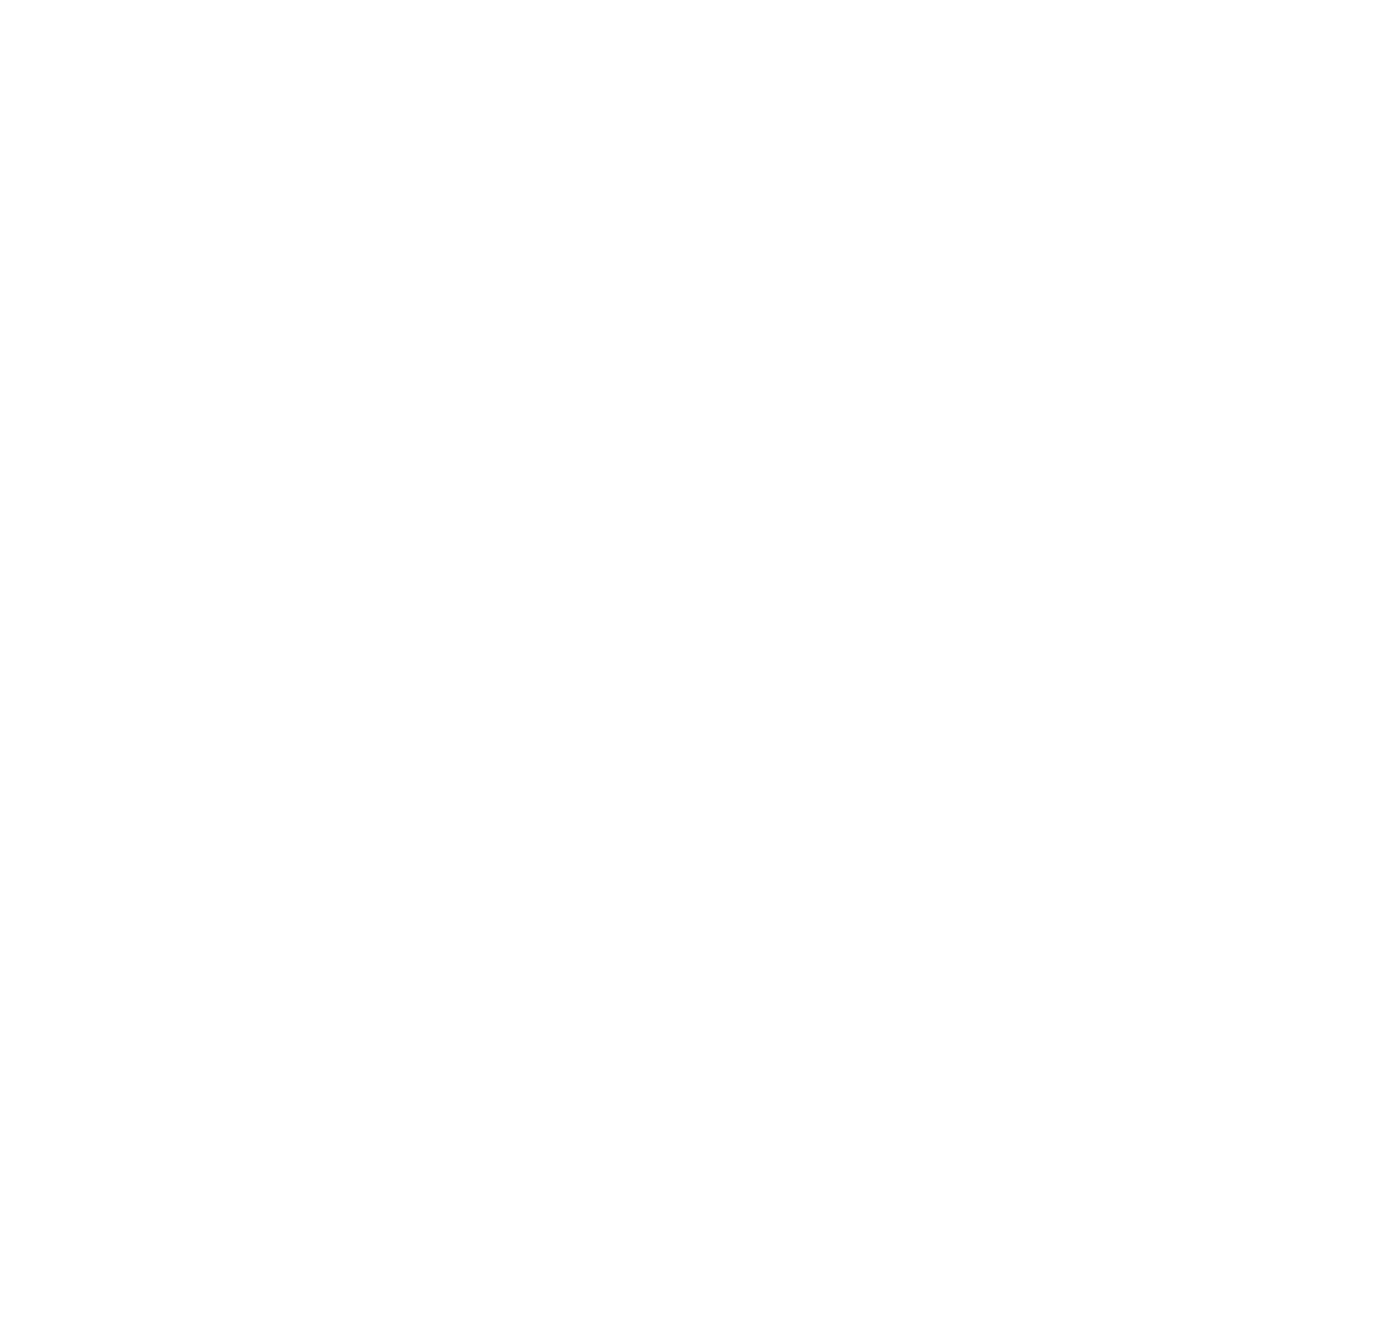 UCI Esports Research Lab